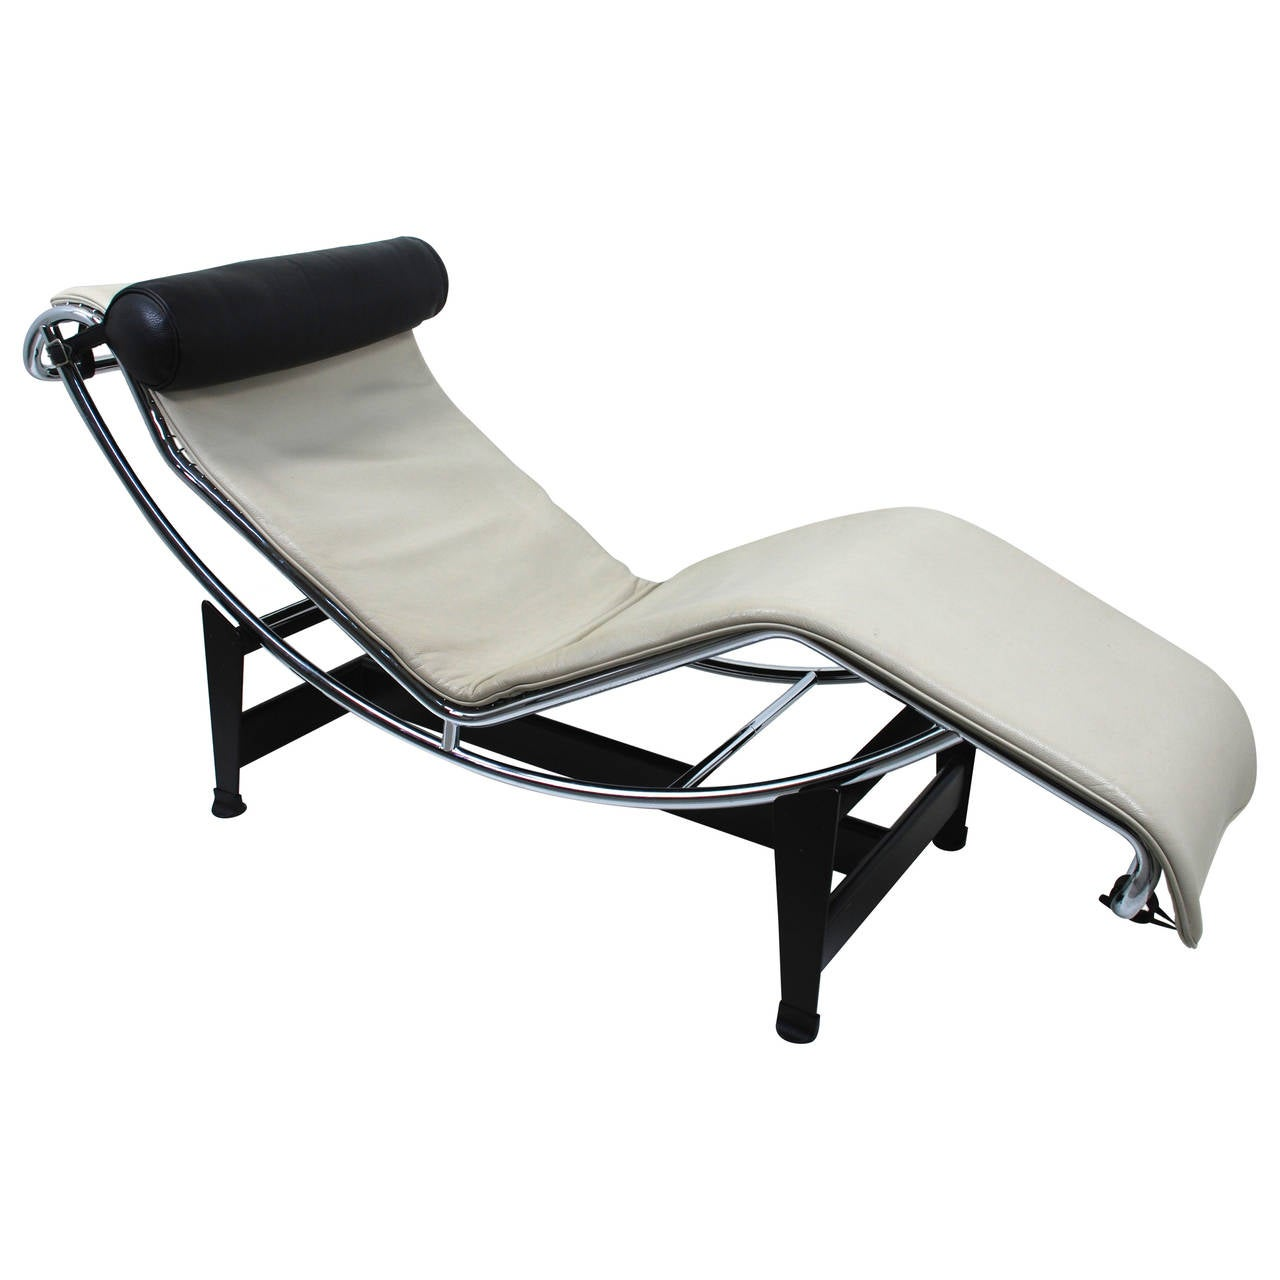 Le corbusier 39 lc 4 39 chaise longue 1928 at 1stdibs for Chaise longe le corbusier